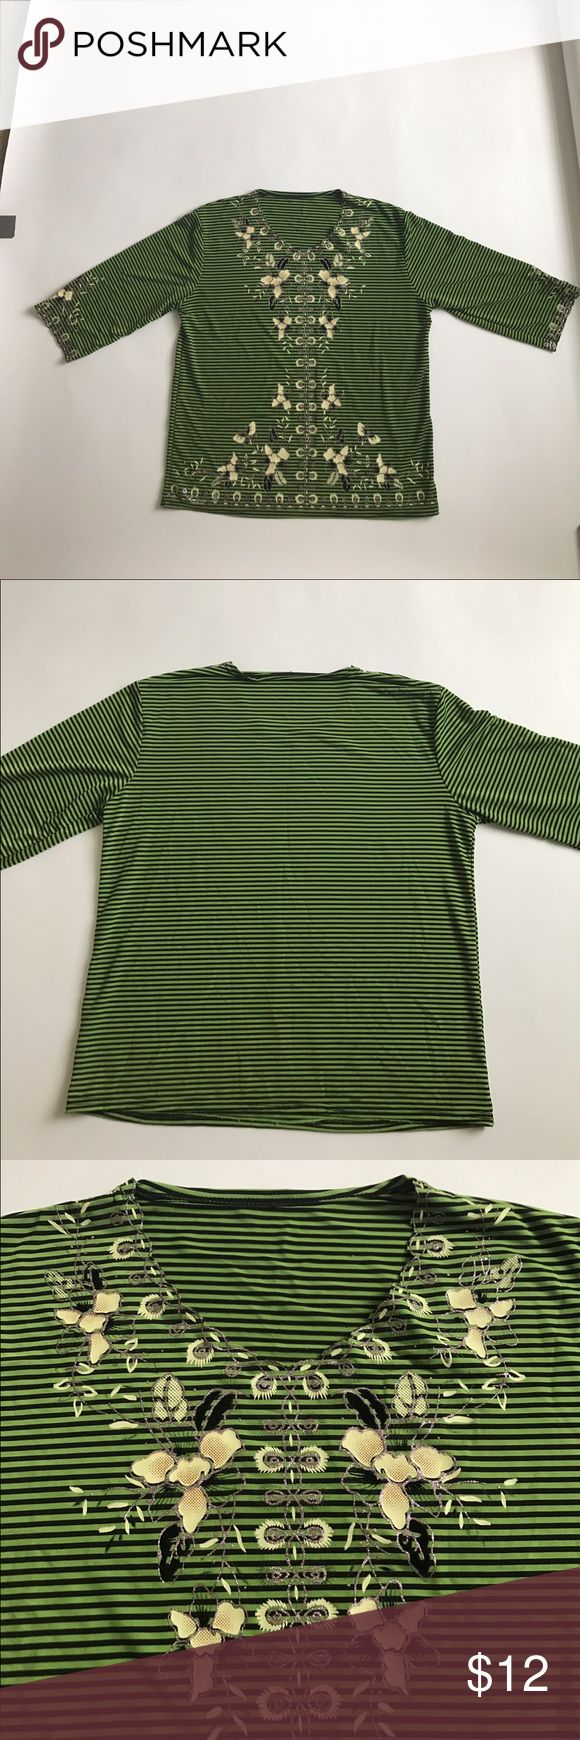 Stripped top with floral design Green long sleeve top with elegant floral designs. V-neck. Silk like material. In Good condition. No size tag but its women's M Tops Tees - Long Sleeve